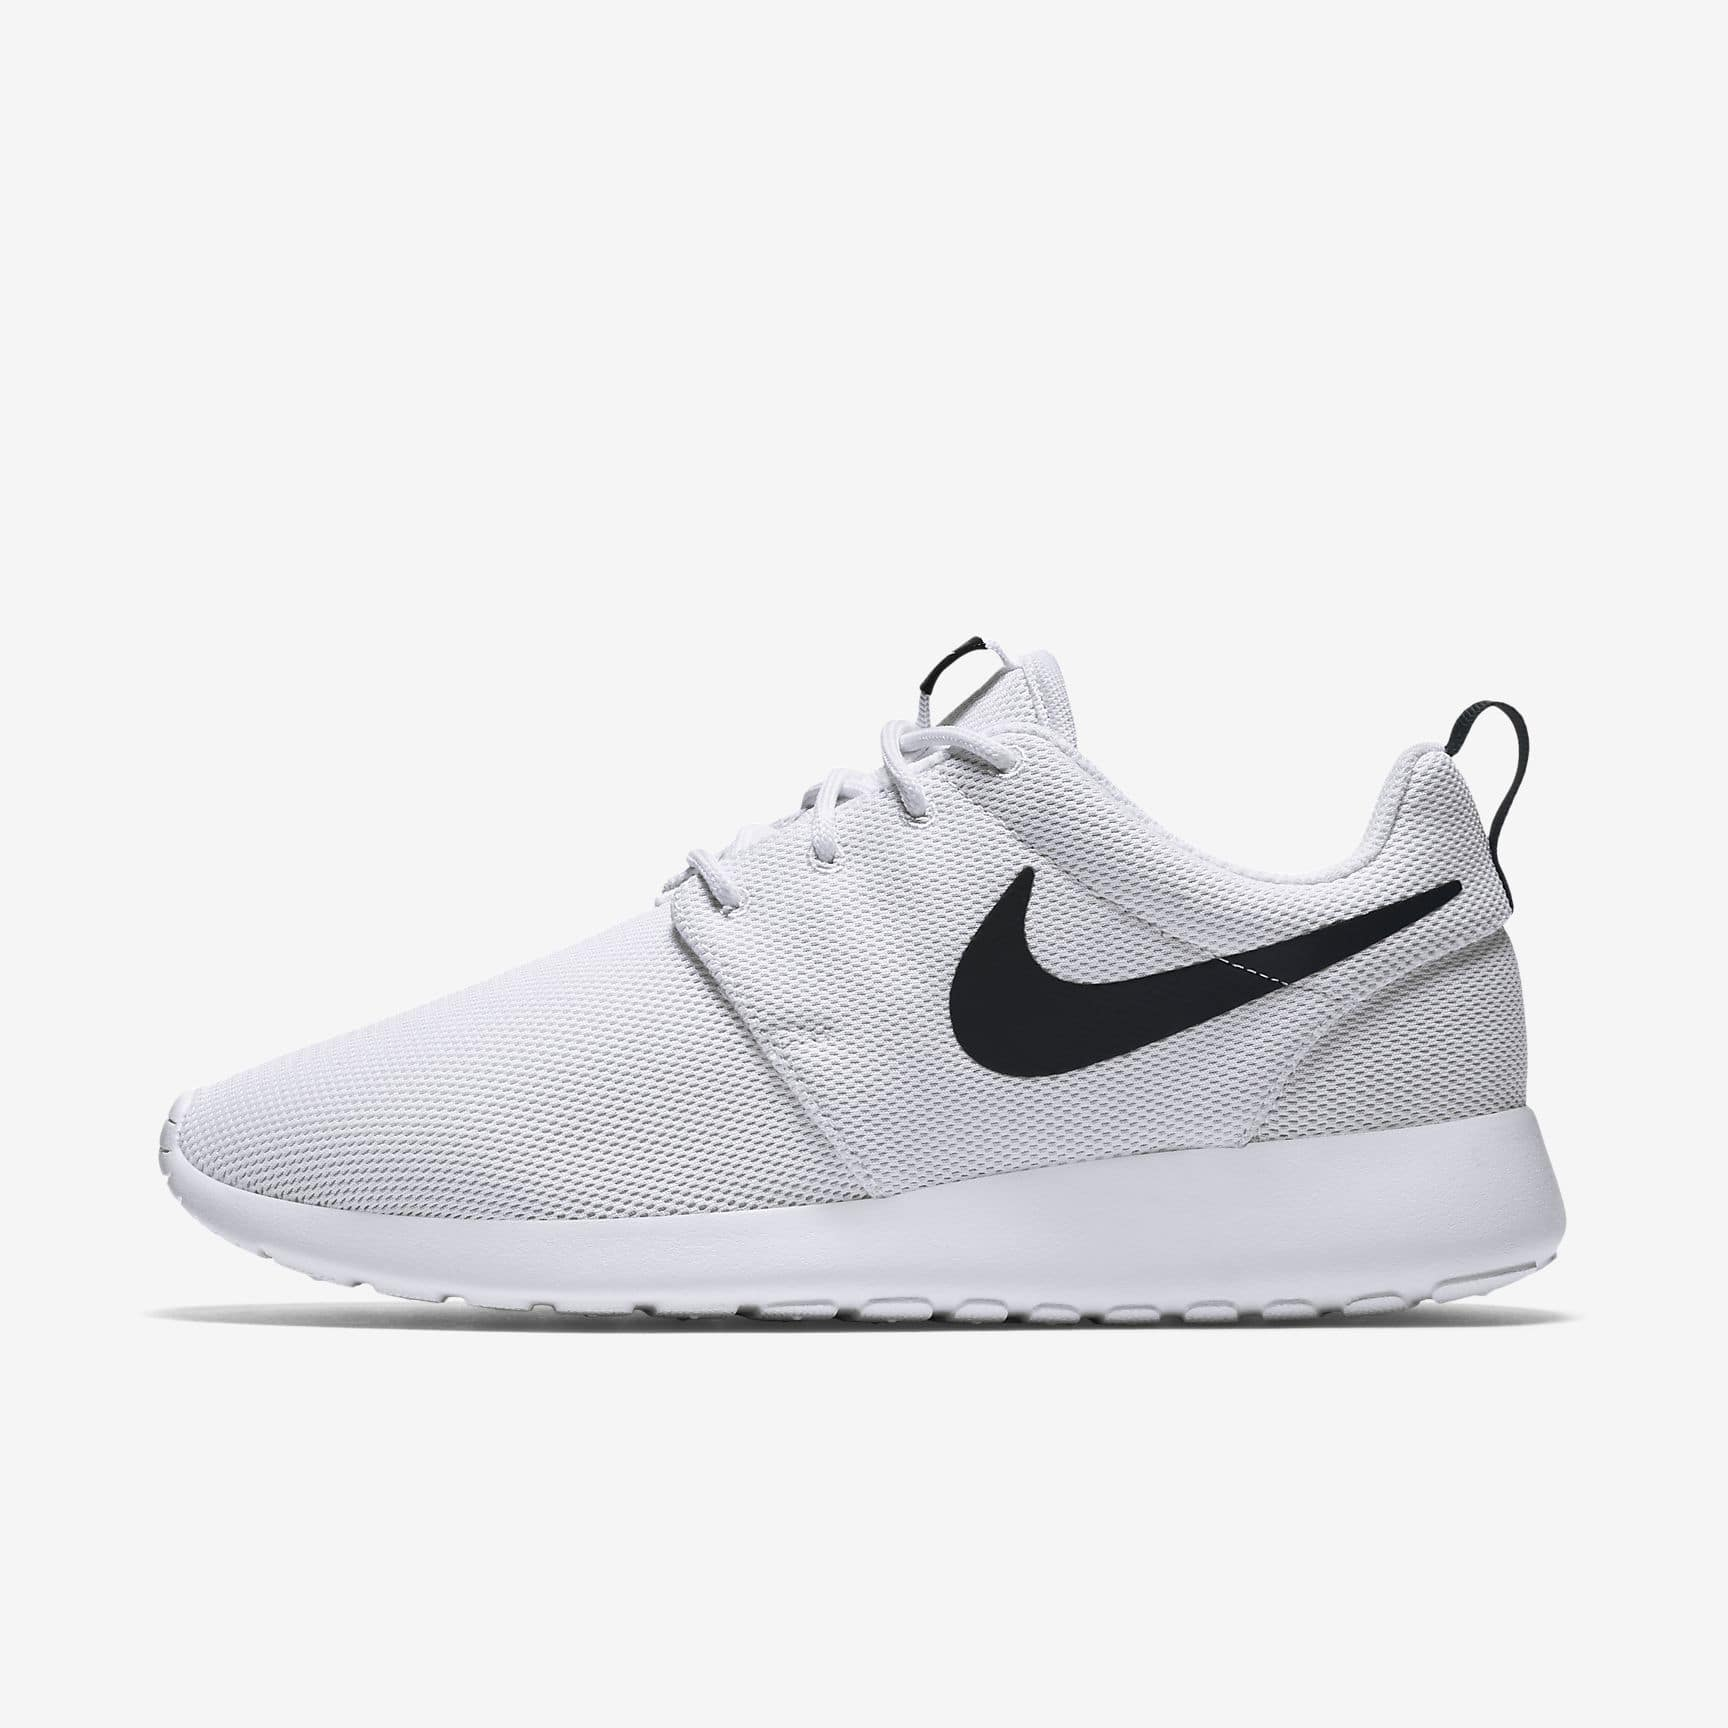 5e7962cd79f4 Nike Women s Roshe One Shoes (White Black White) - Slickdeals.net